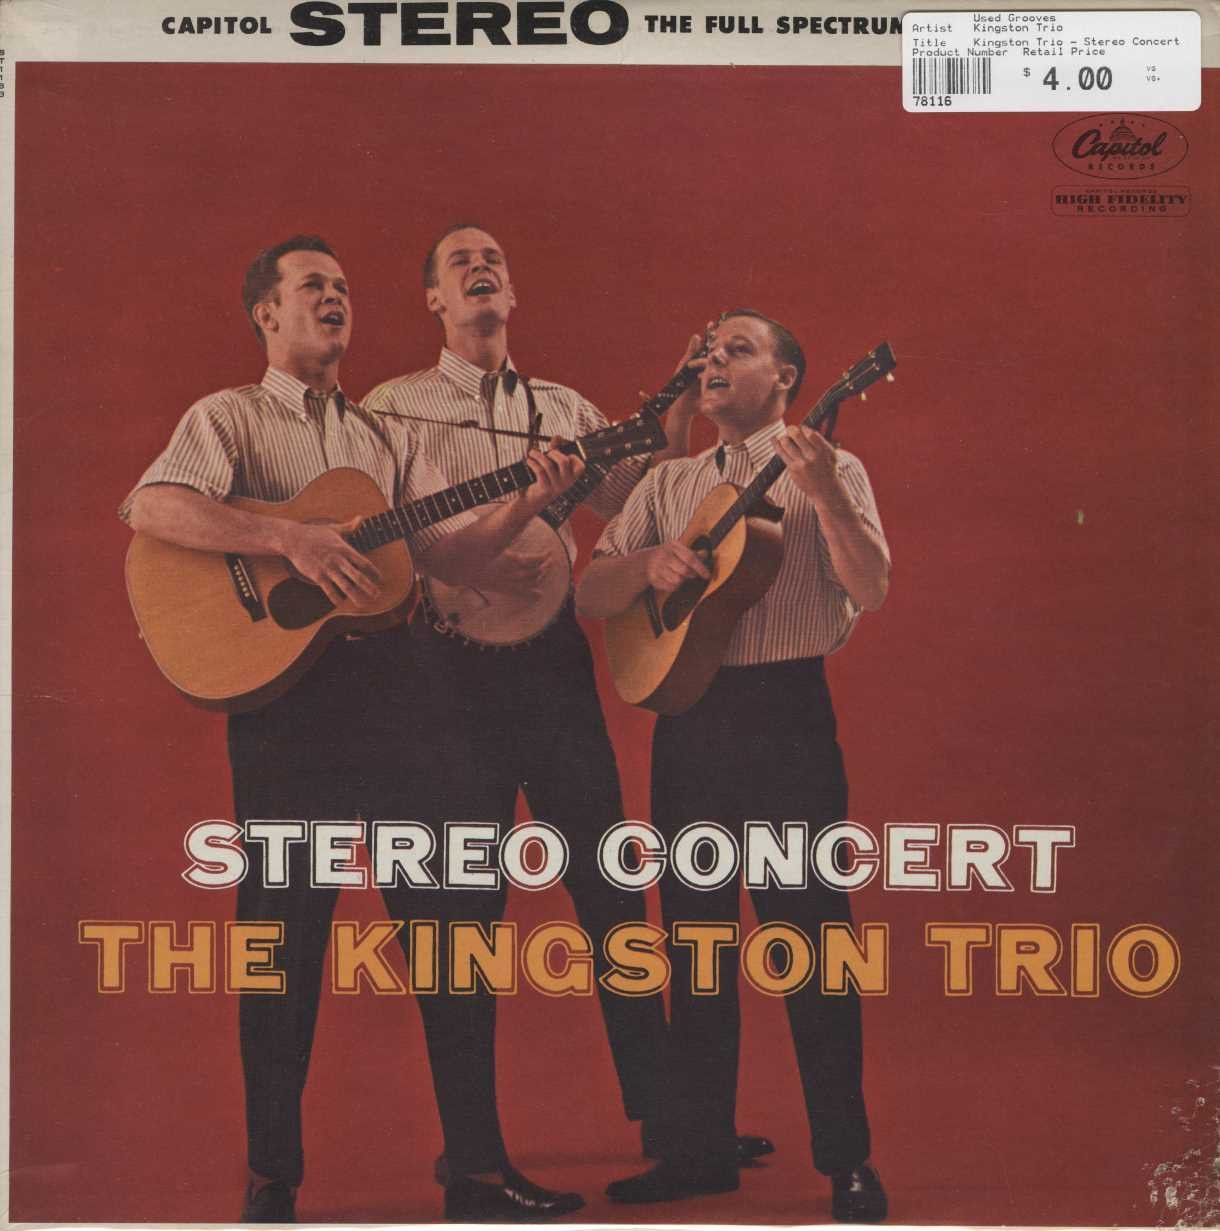 Kingston Trio Stereo Concert With Images The Kingston Trio American Folk Music Folk Music